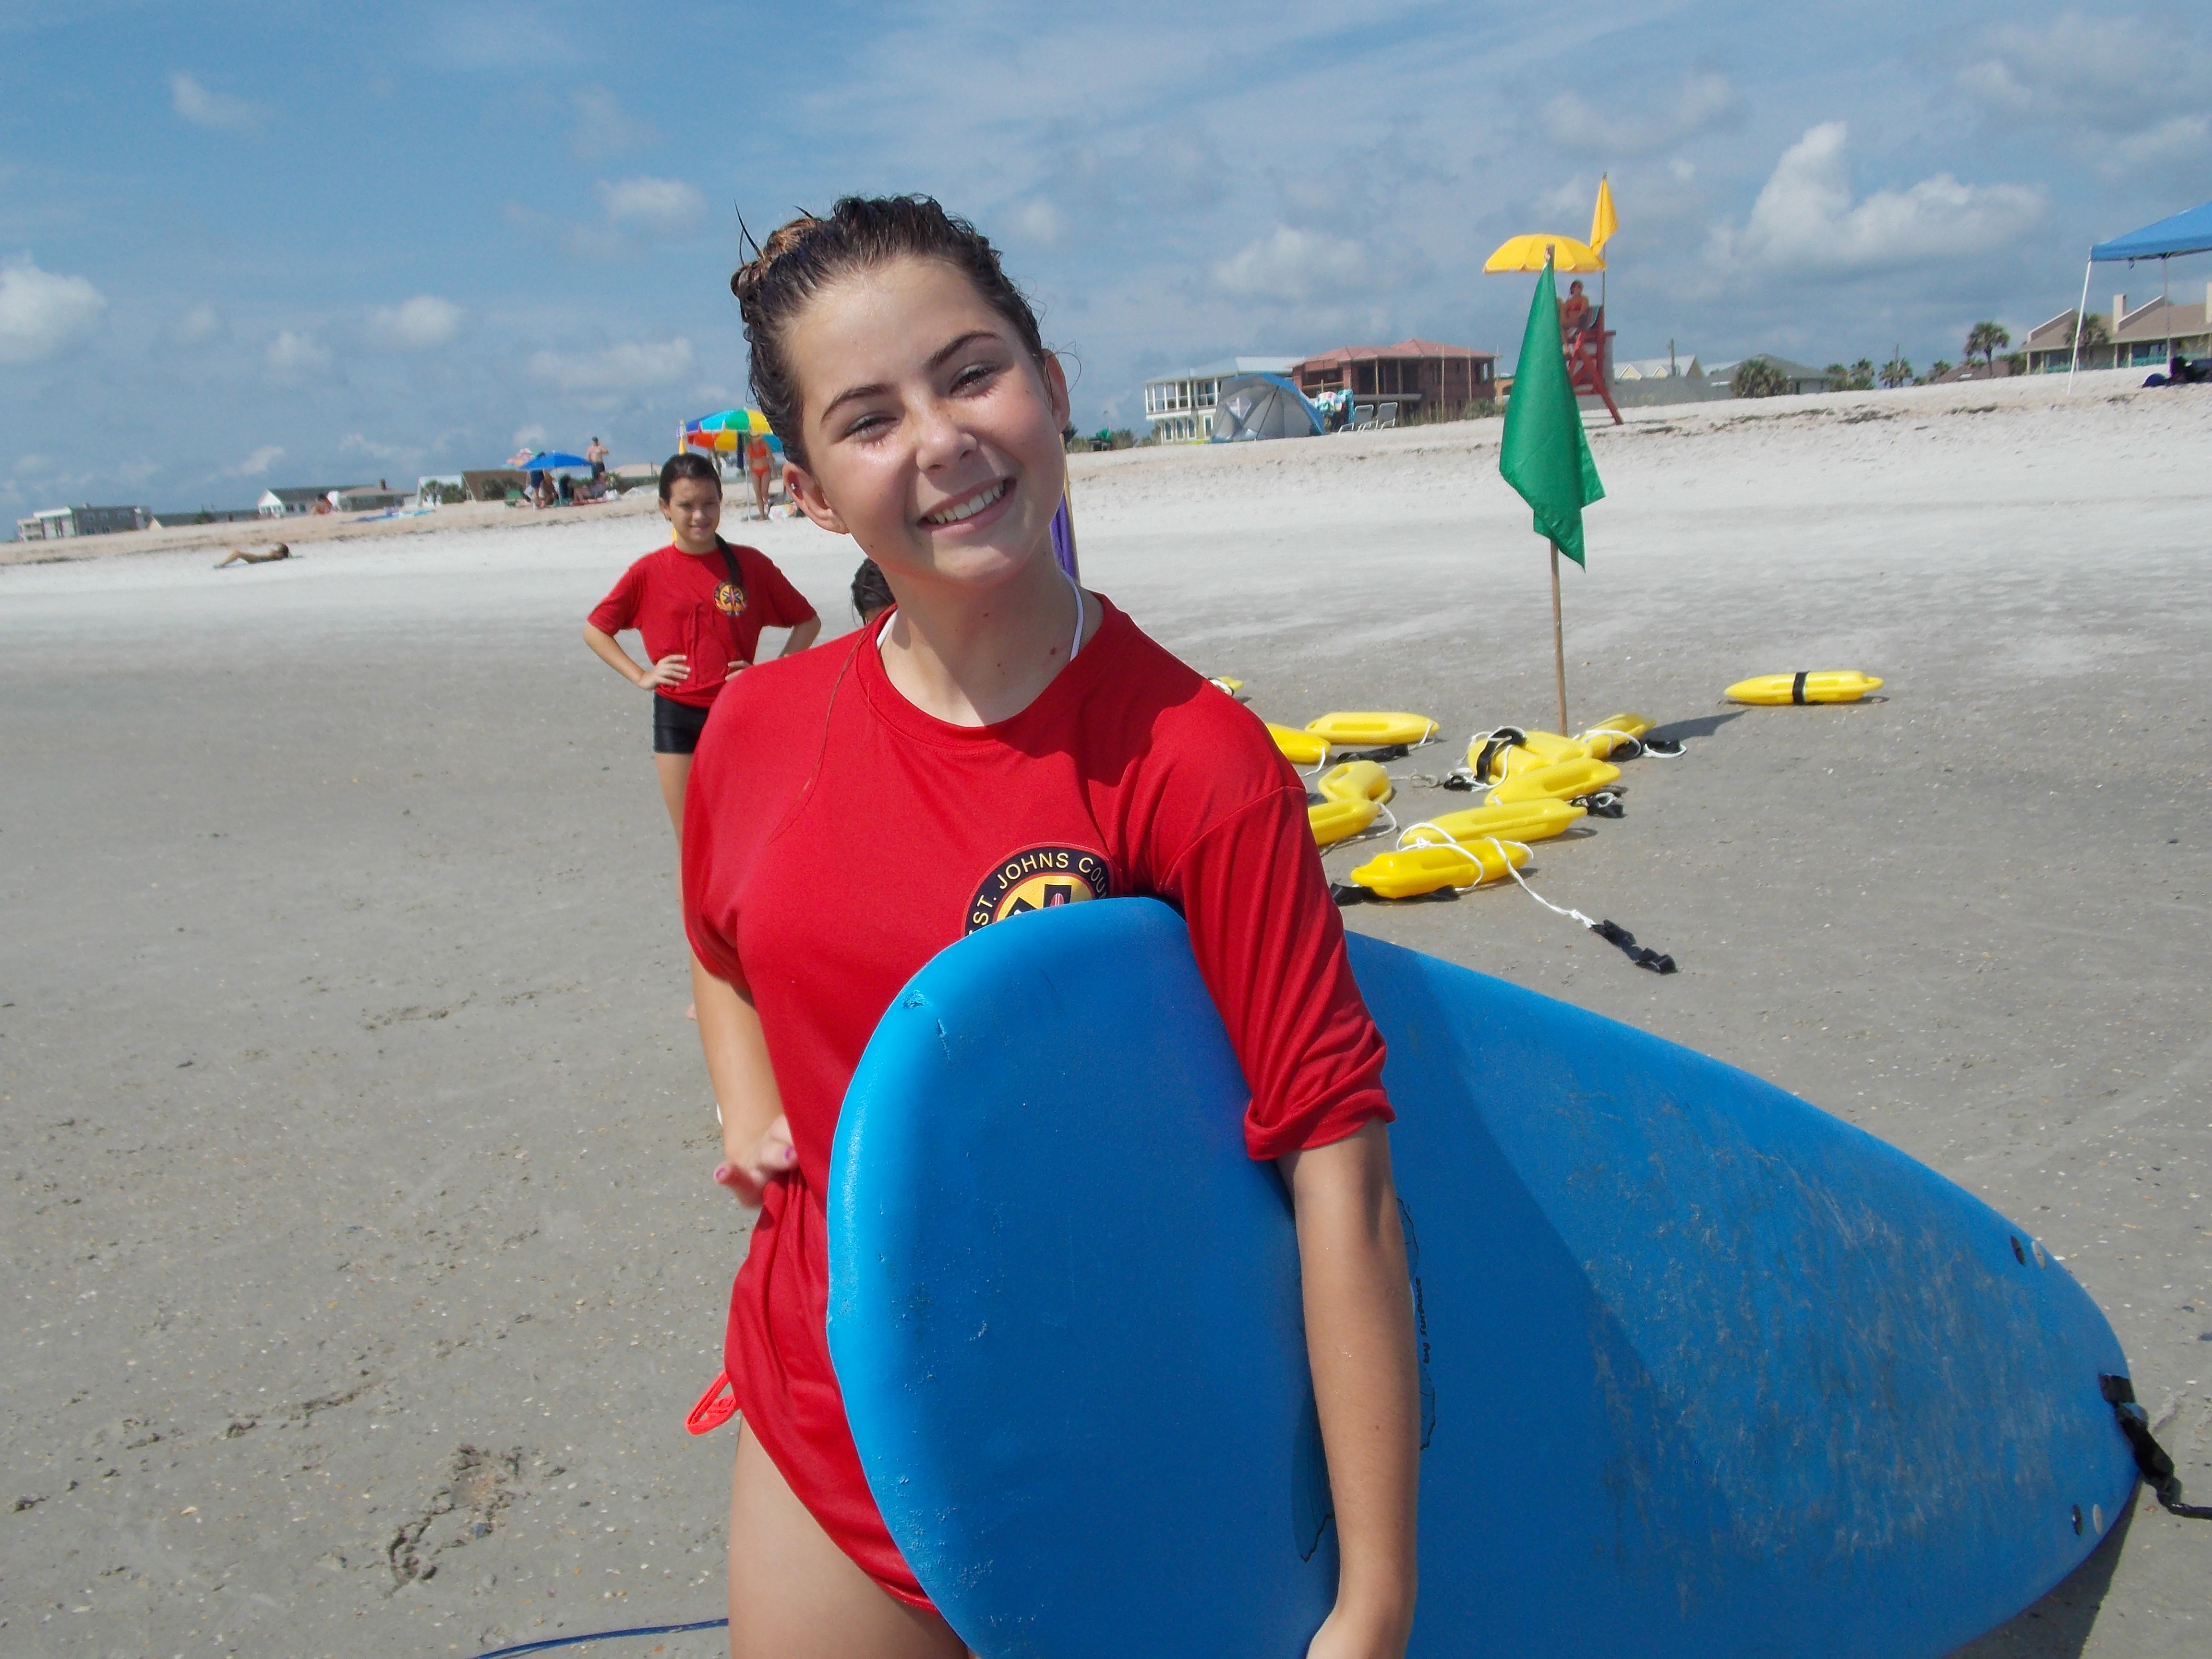 A Junior Lifeguard camp participants has fun on St. Augustine Beach and learns ocean safety. Photos by REBECCA ROMAINE